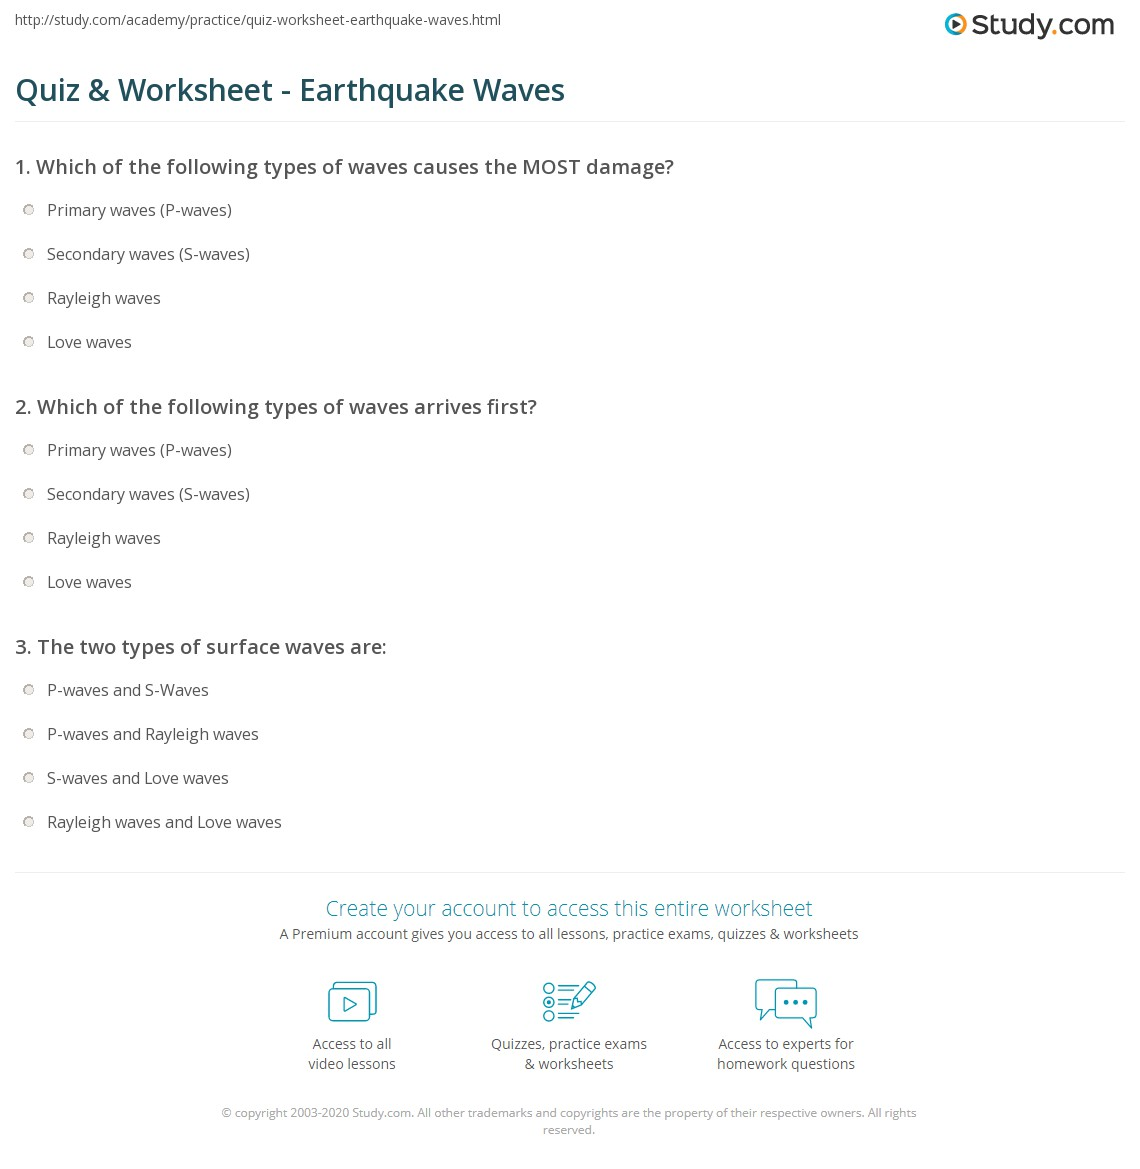 Worksheets Earthquakes And Seismic Waves Worksheet quiz worksheet earthquake waves study com print types concept worksheet